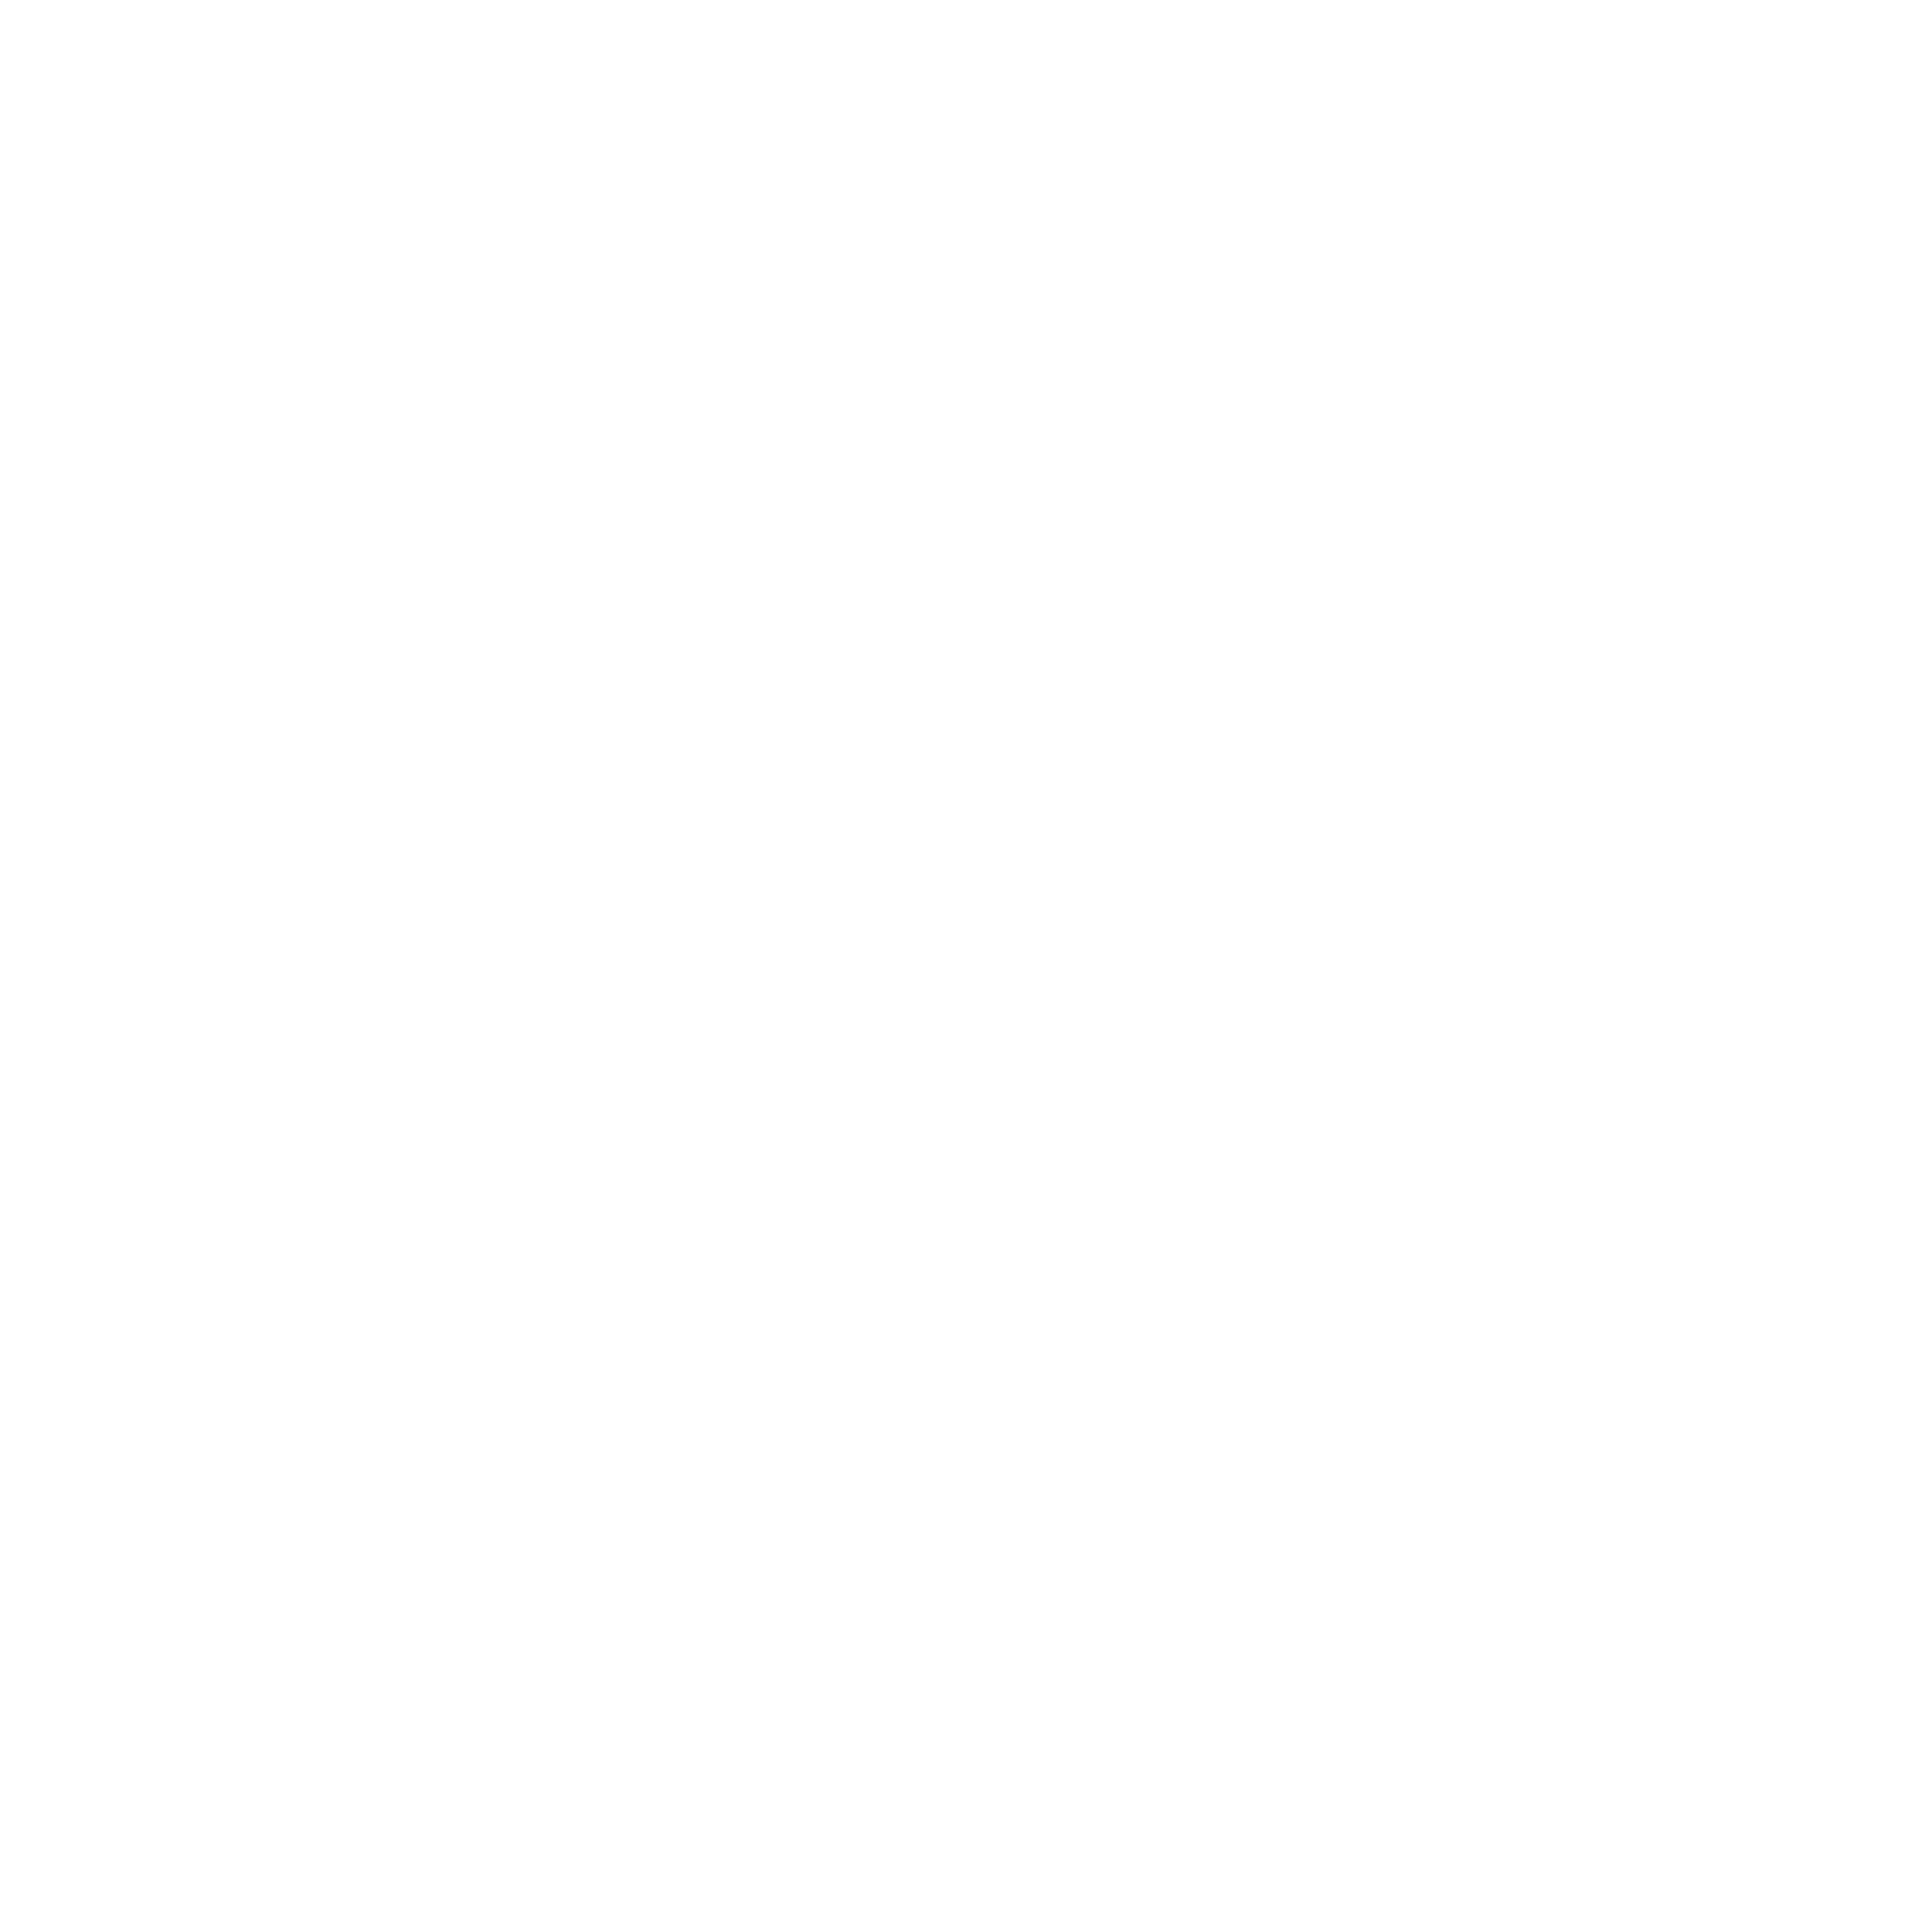 maria berlin-white-03.png